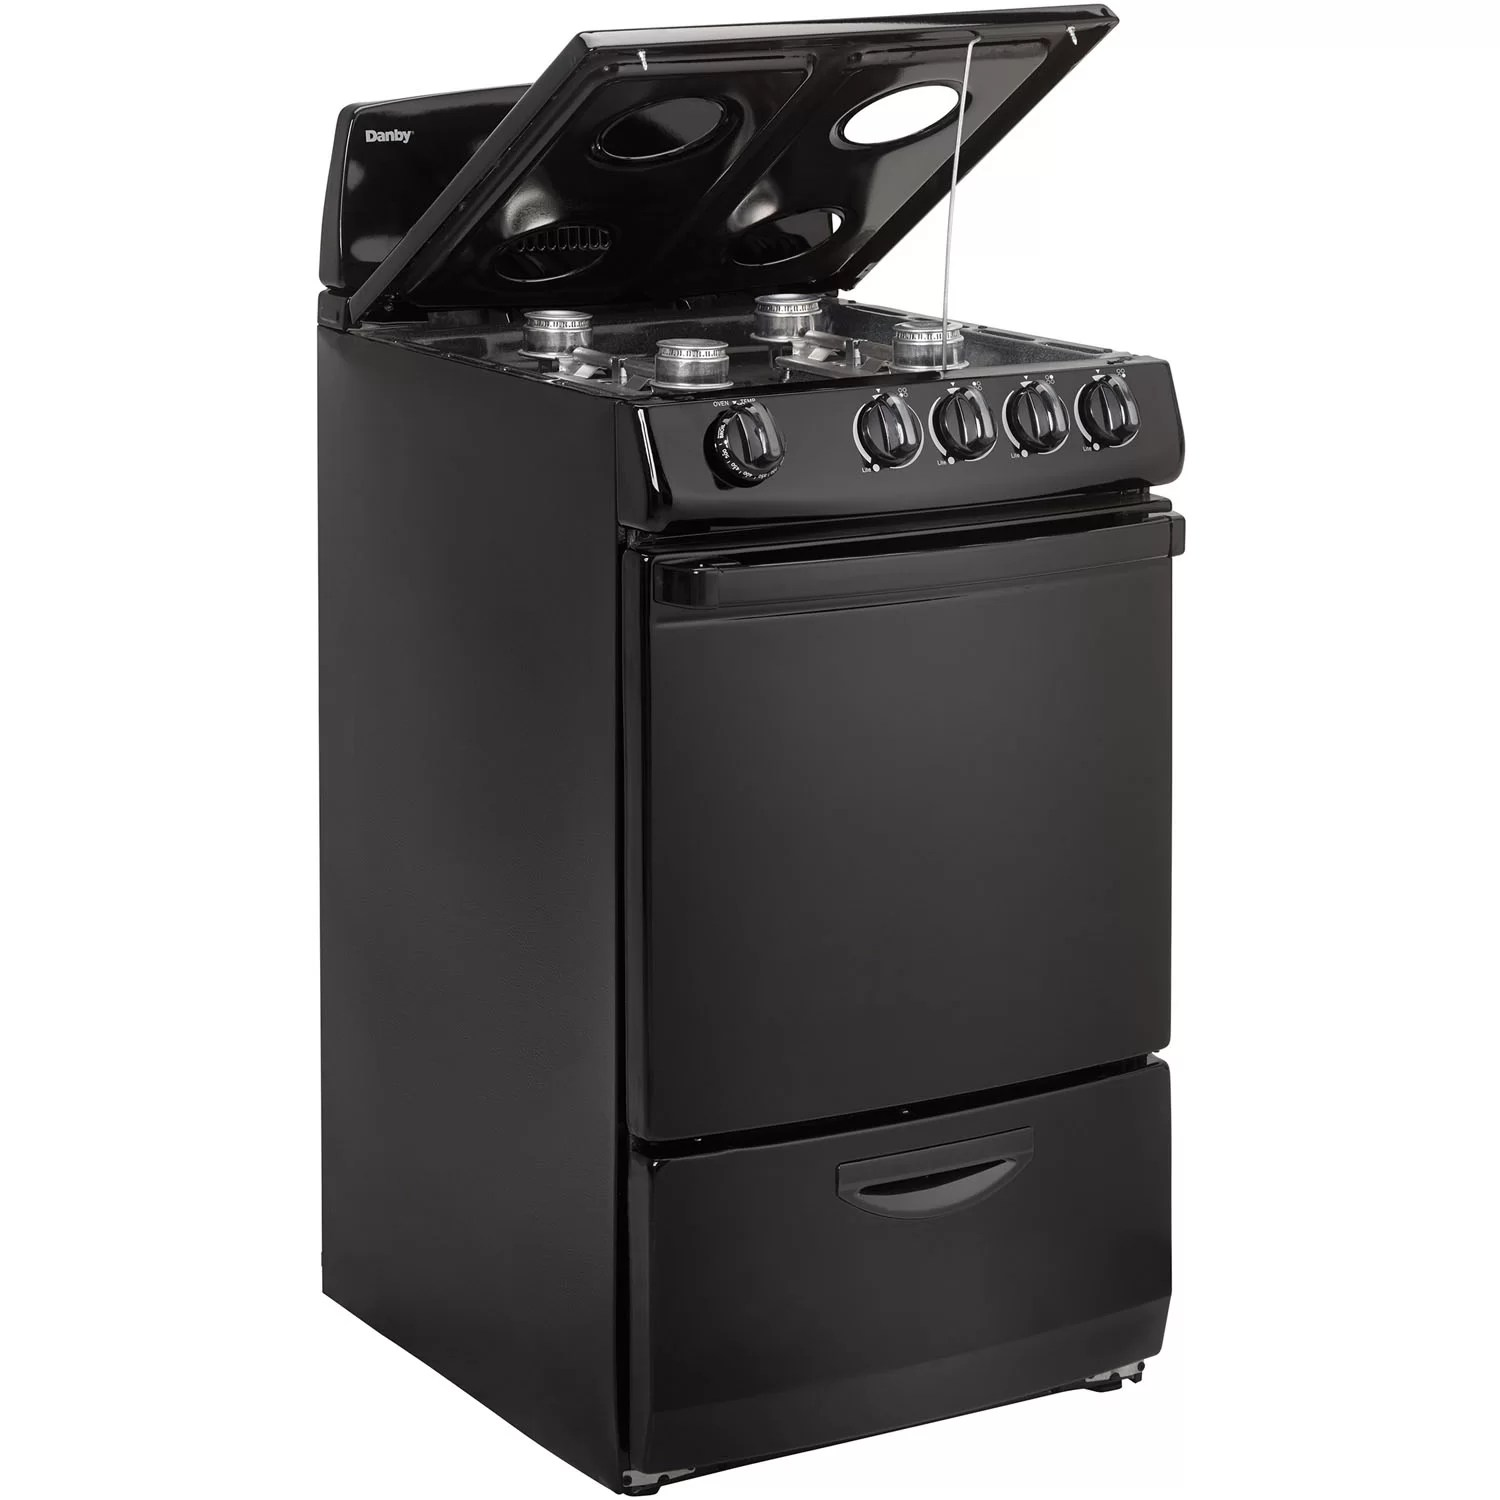 Danby 20 Freestanding Gas Range  Reviews  Wayfair